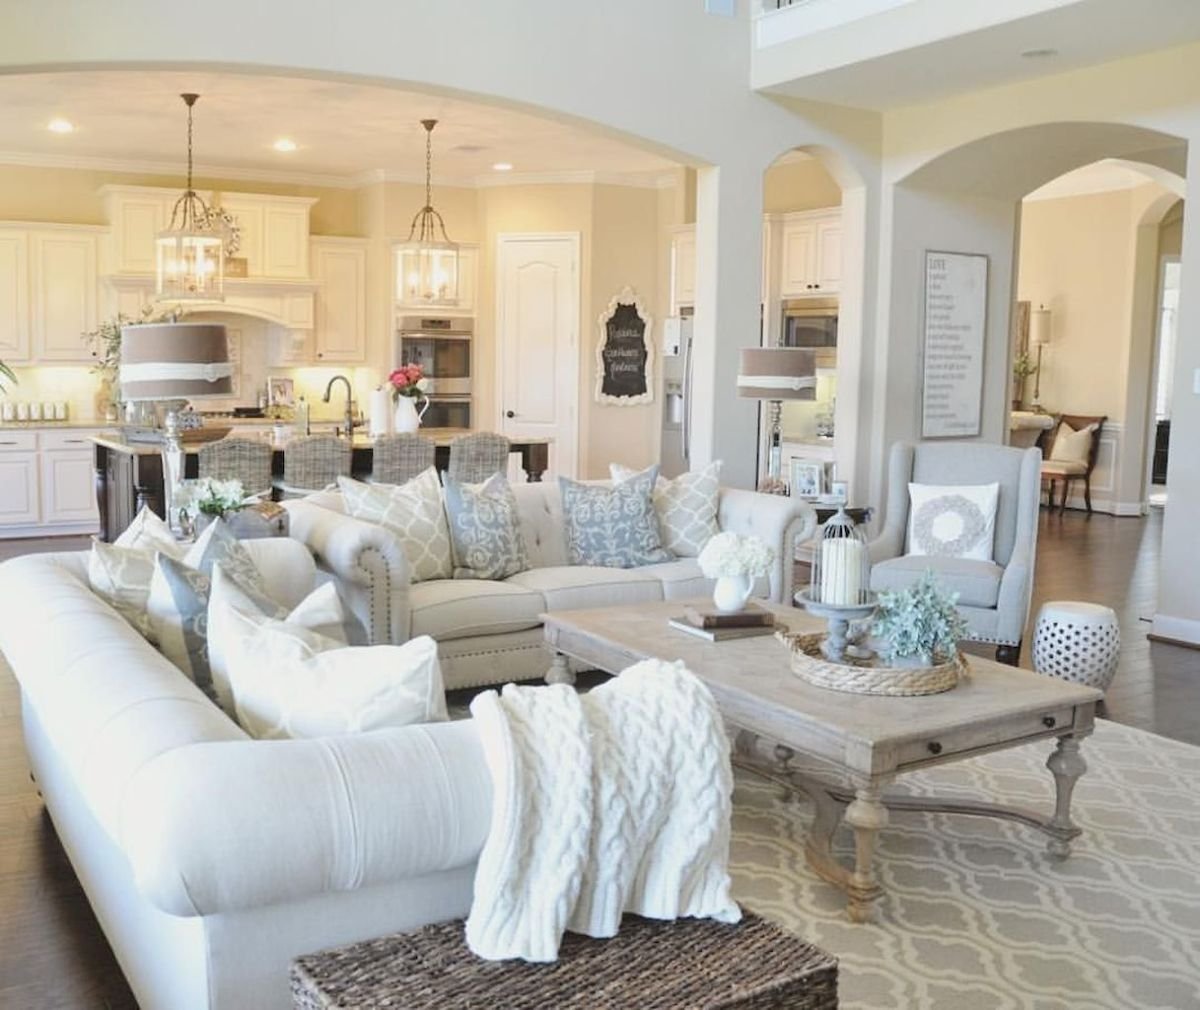 Best Open Kitchen Living And Dining Concepts Perfect For Modern And Traditional Interior Styles (76)